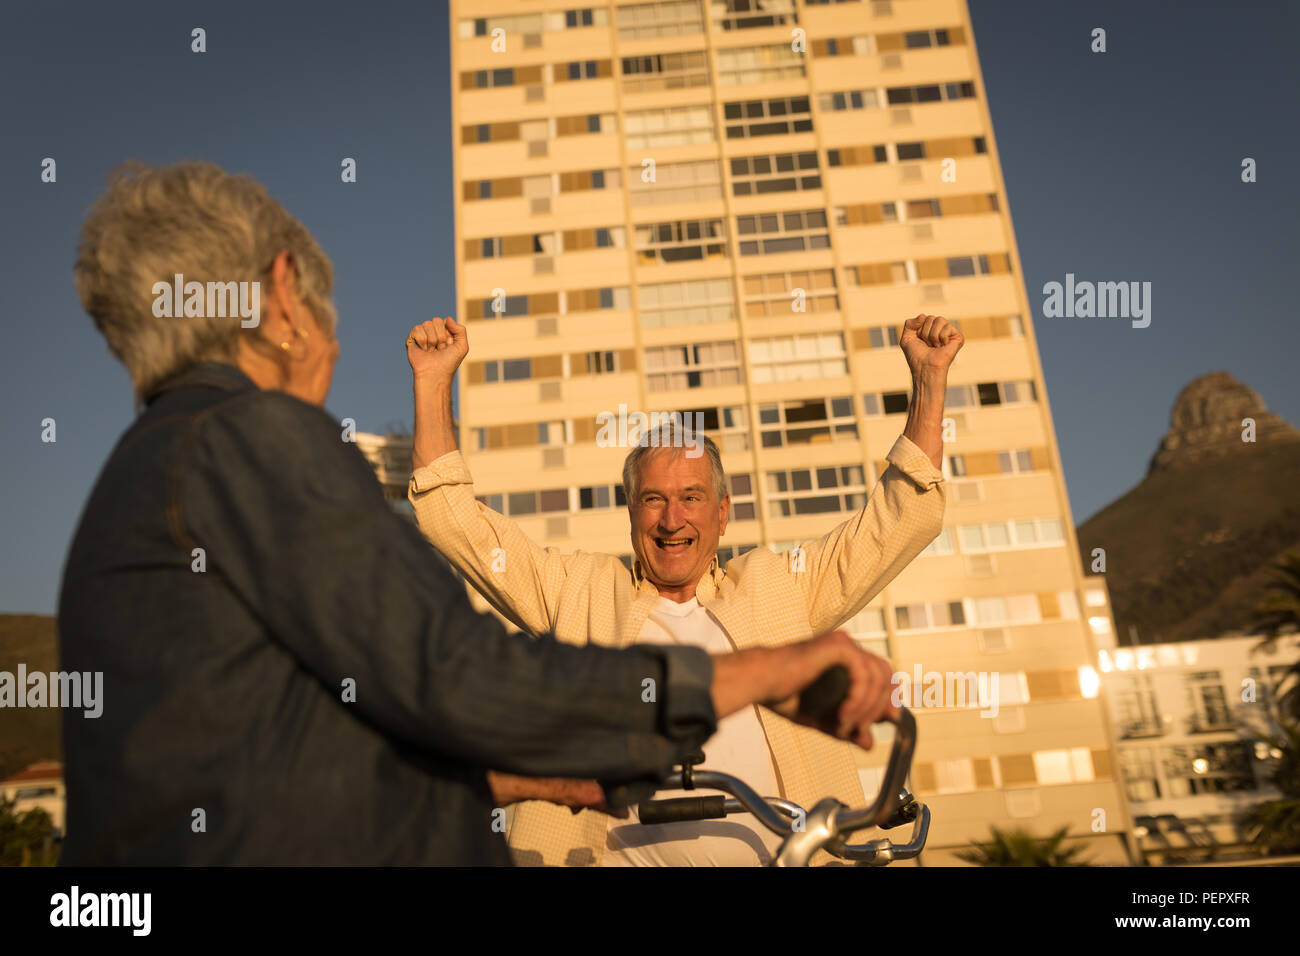 Senior man cheering at promenade - Stock Image